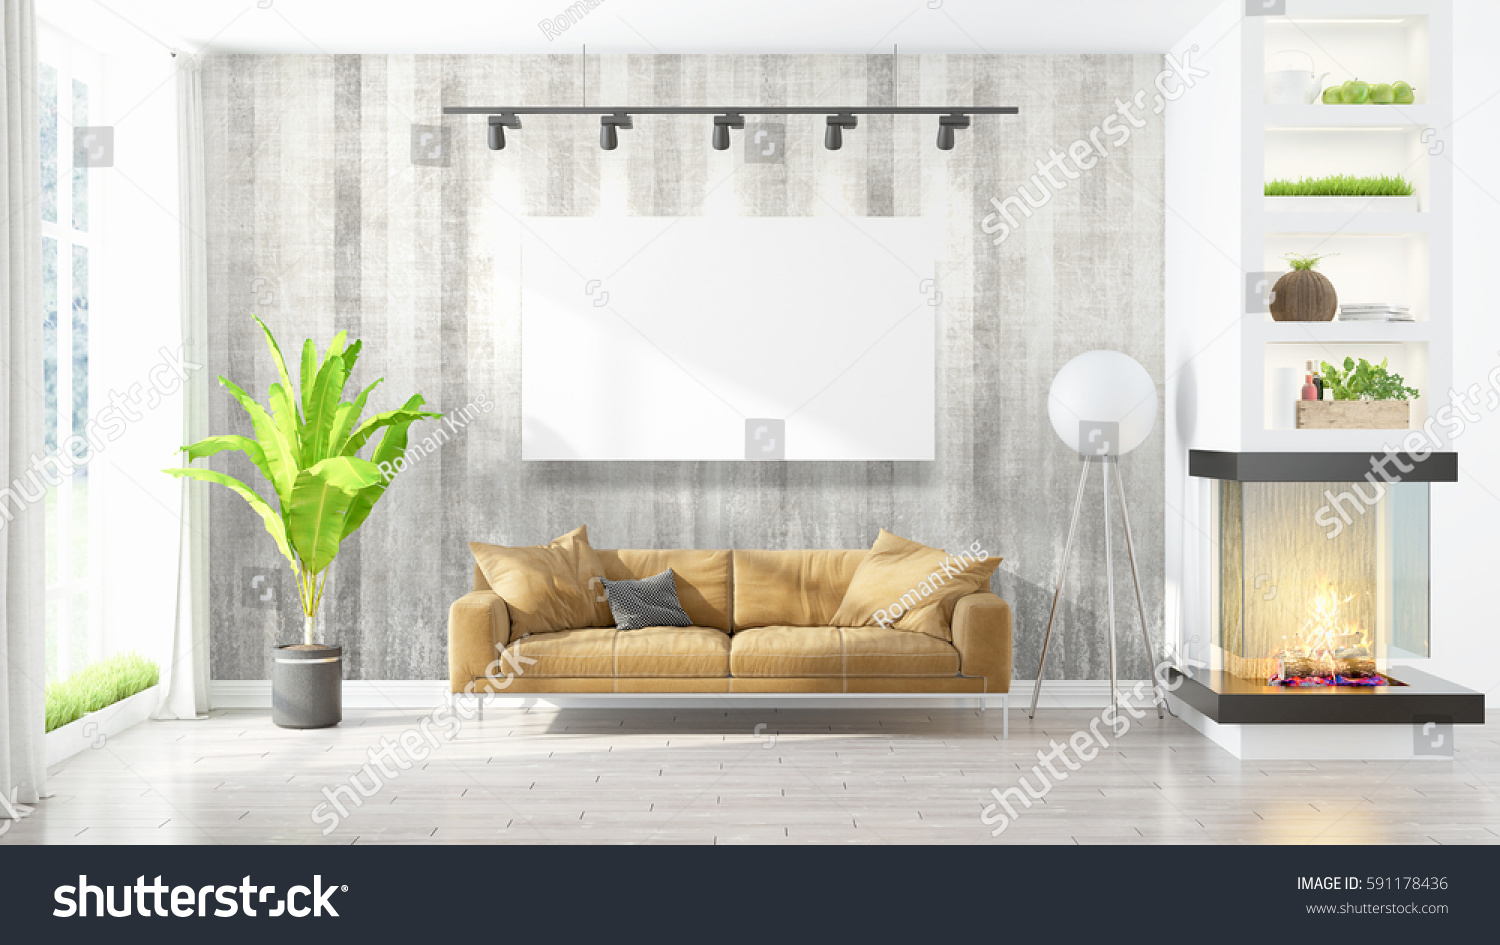 Online image photo editor shutterstock editor - Beautiful houses interior living rooms ...